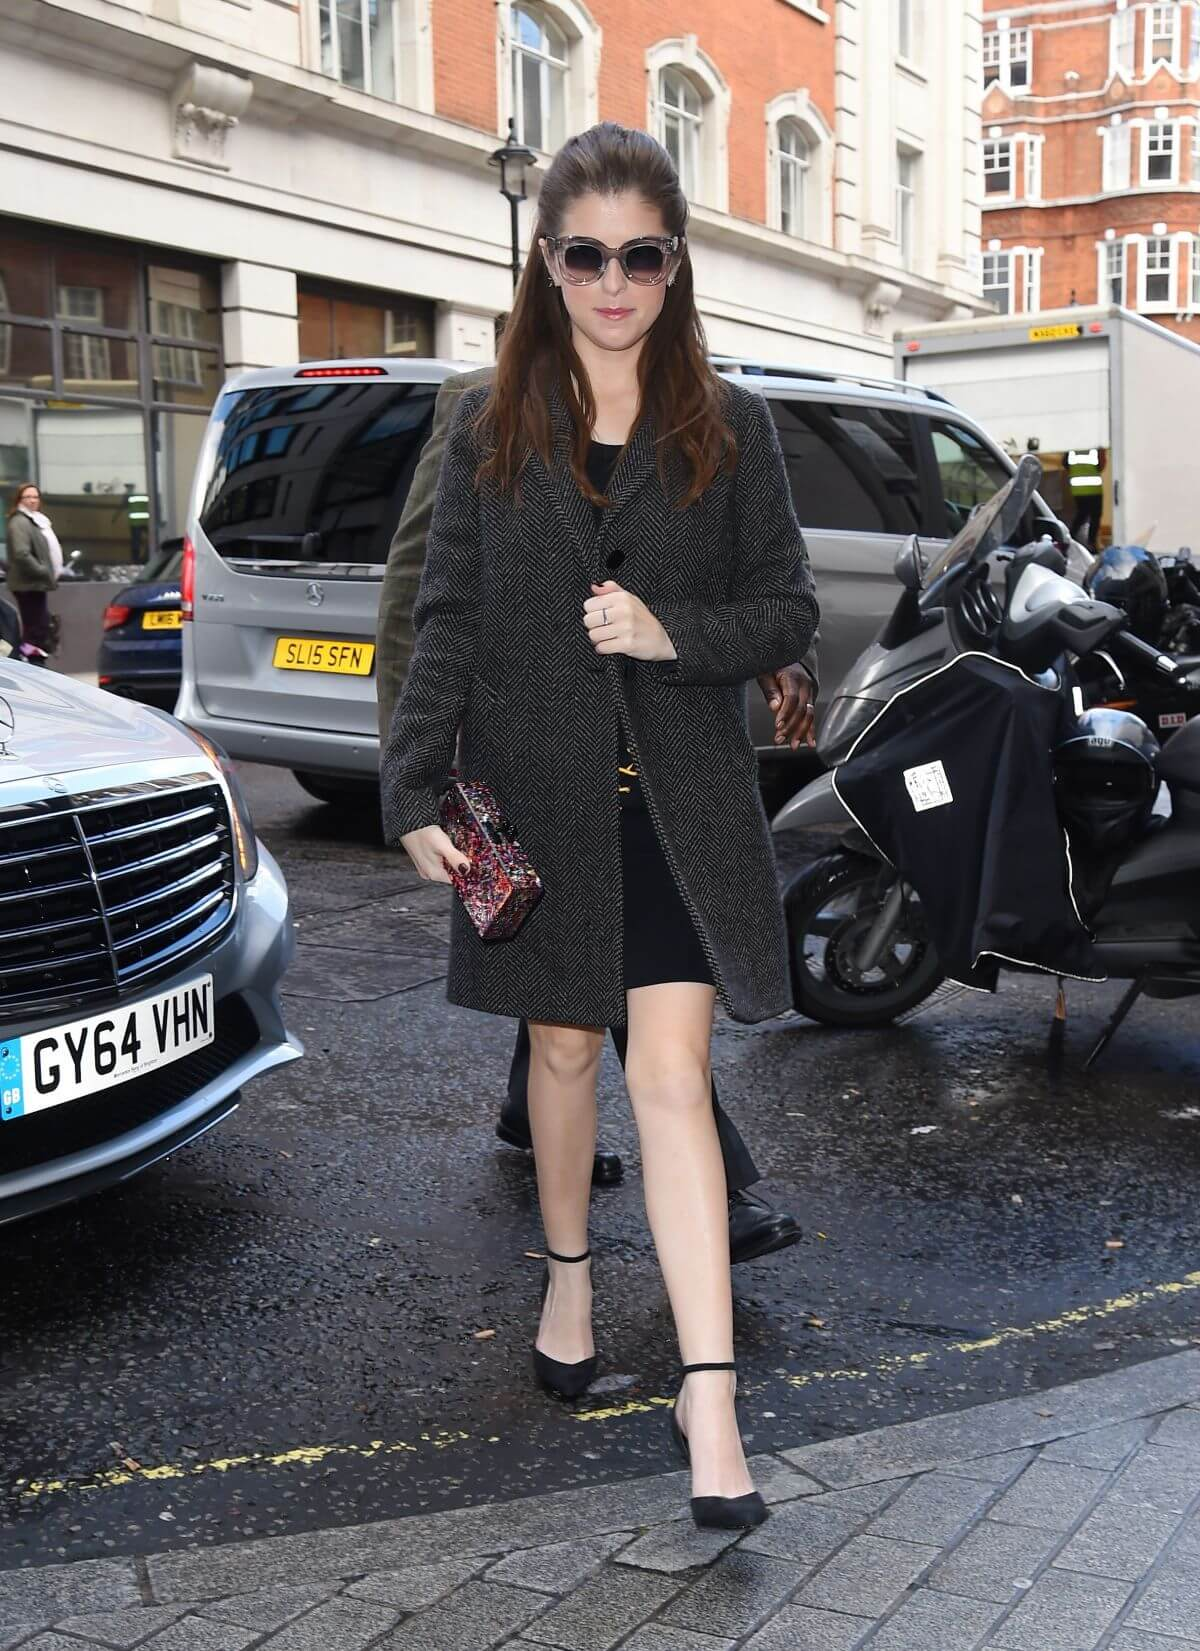 Anna Kendrick Stills Out and About in London Photos